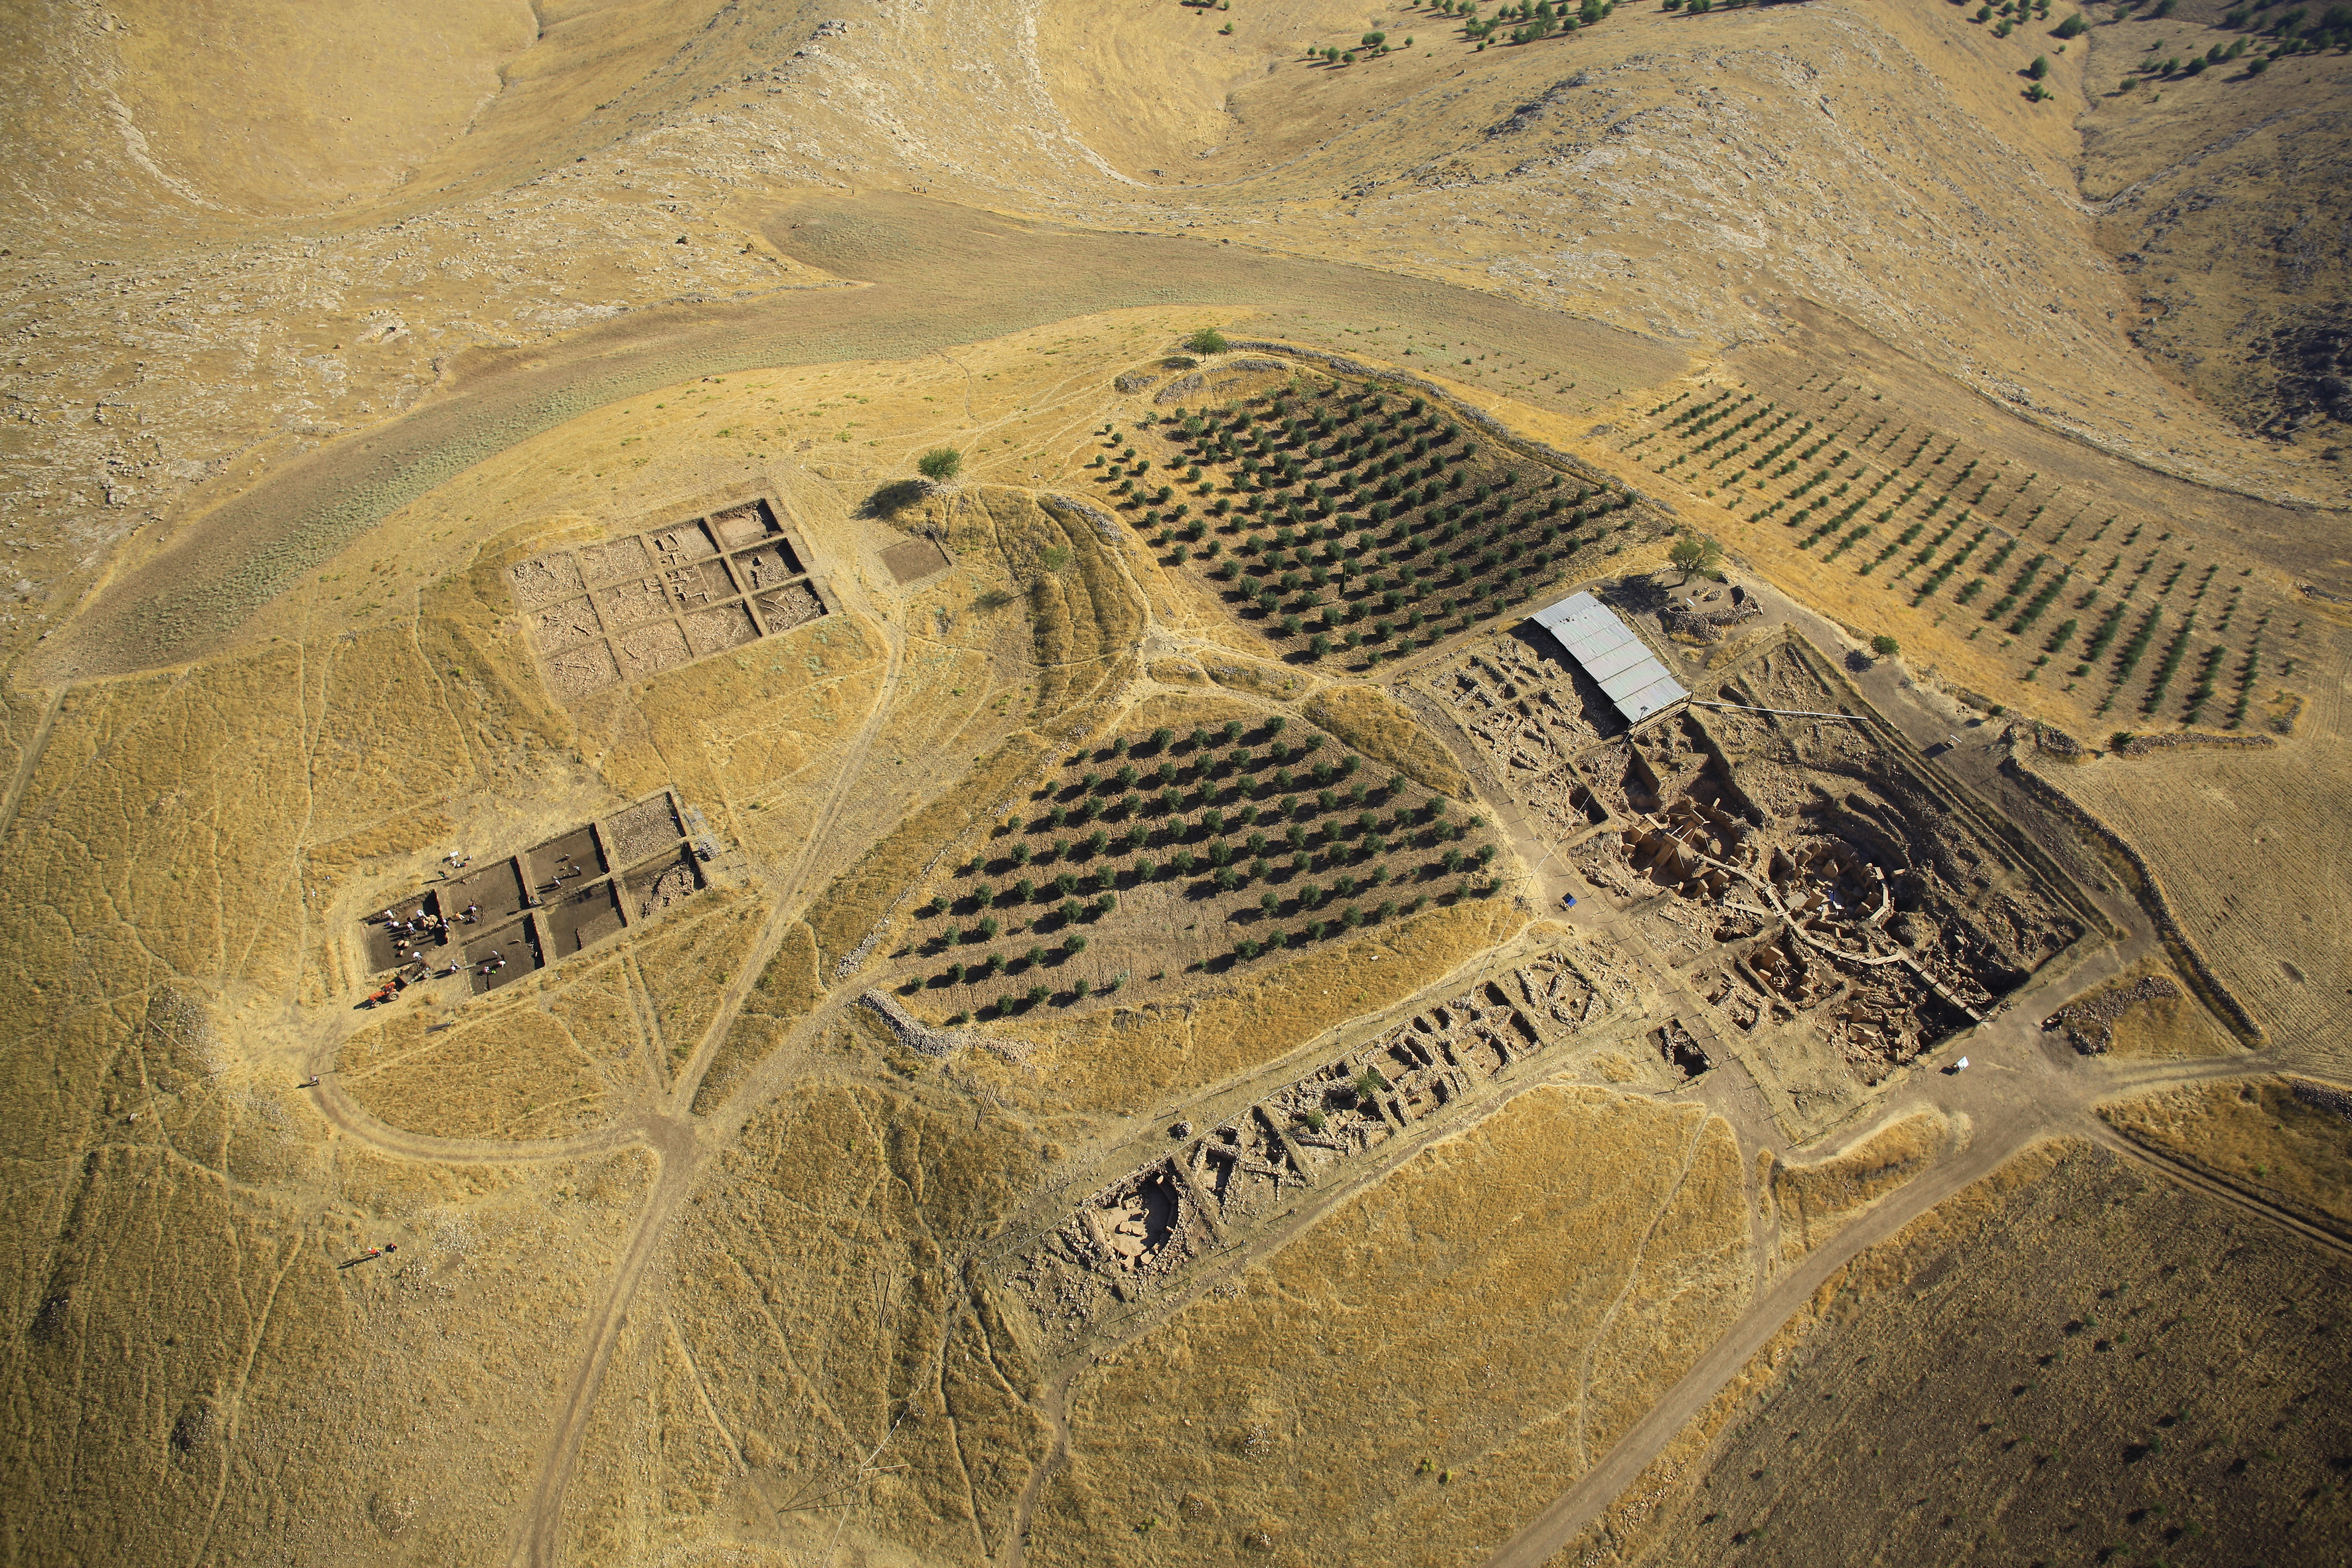 Aerial View Of The Mound Of Göbekli Tepe With Excavation Areas. (Photo: E.  Kücük, DAI)